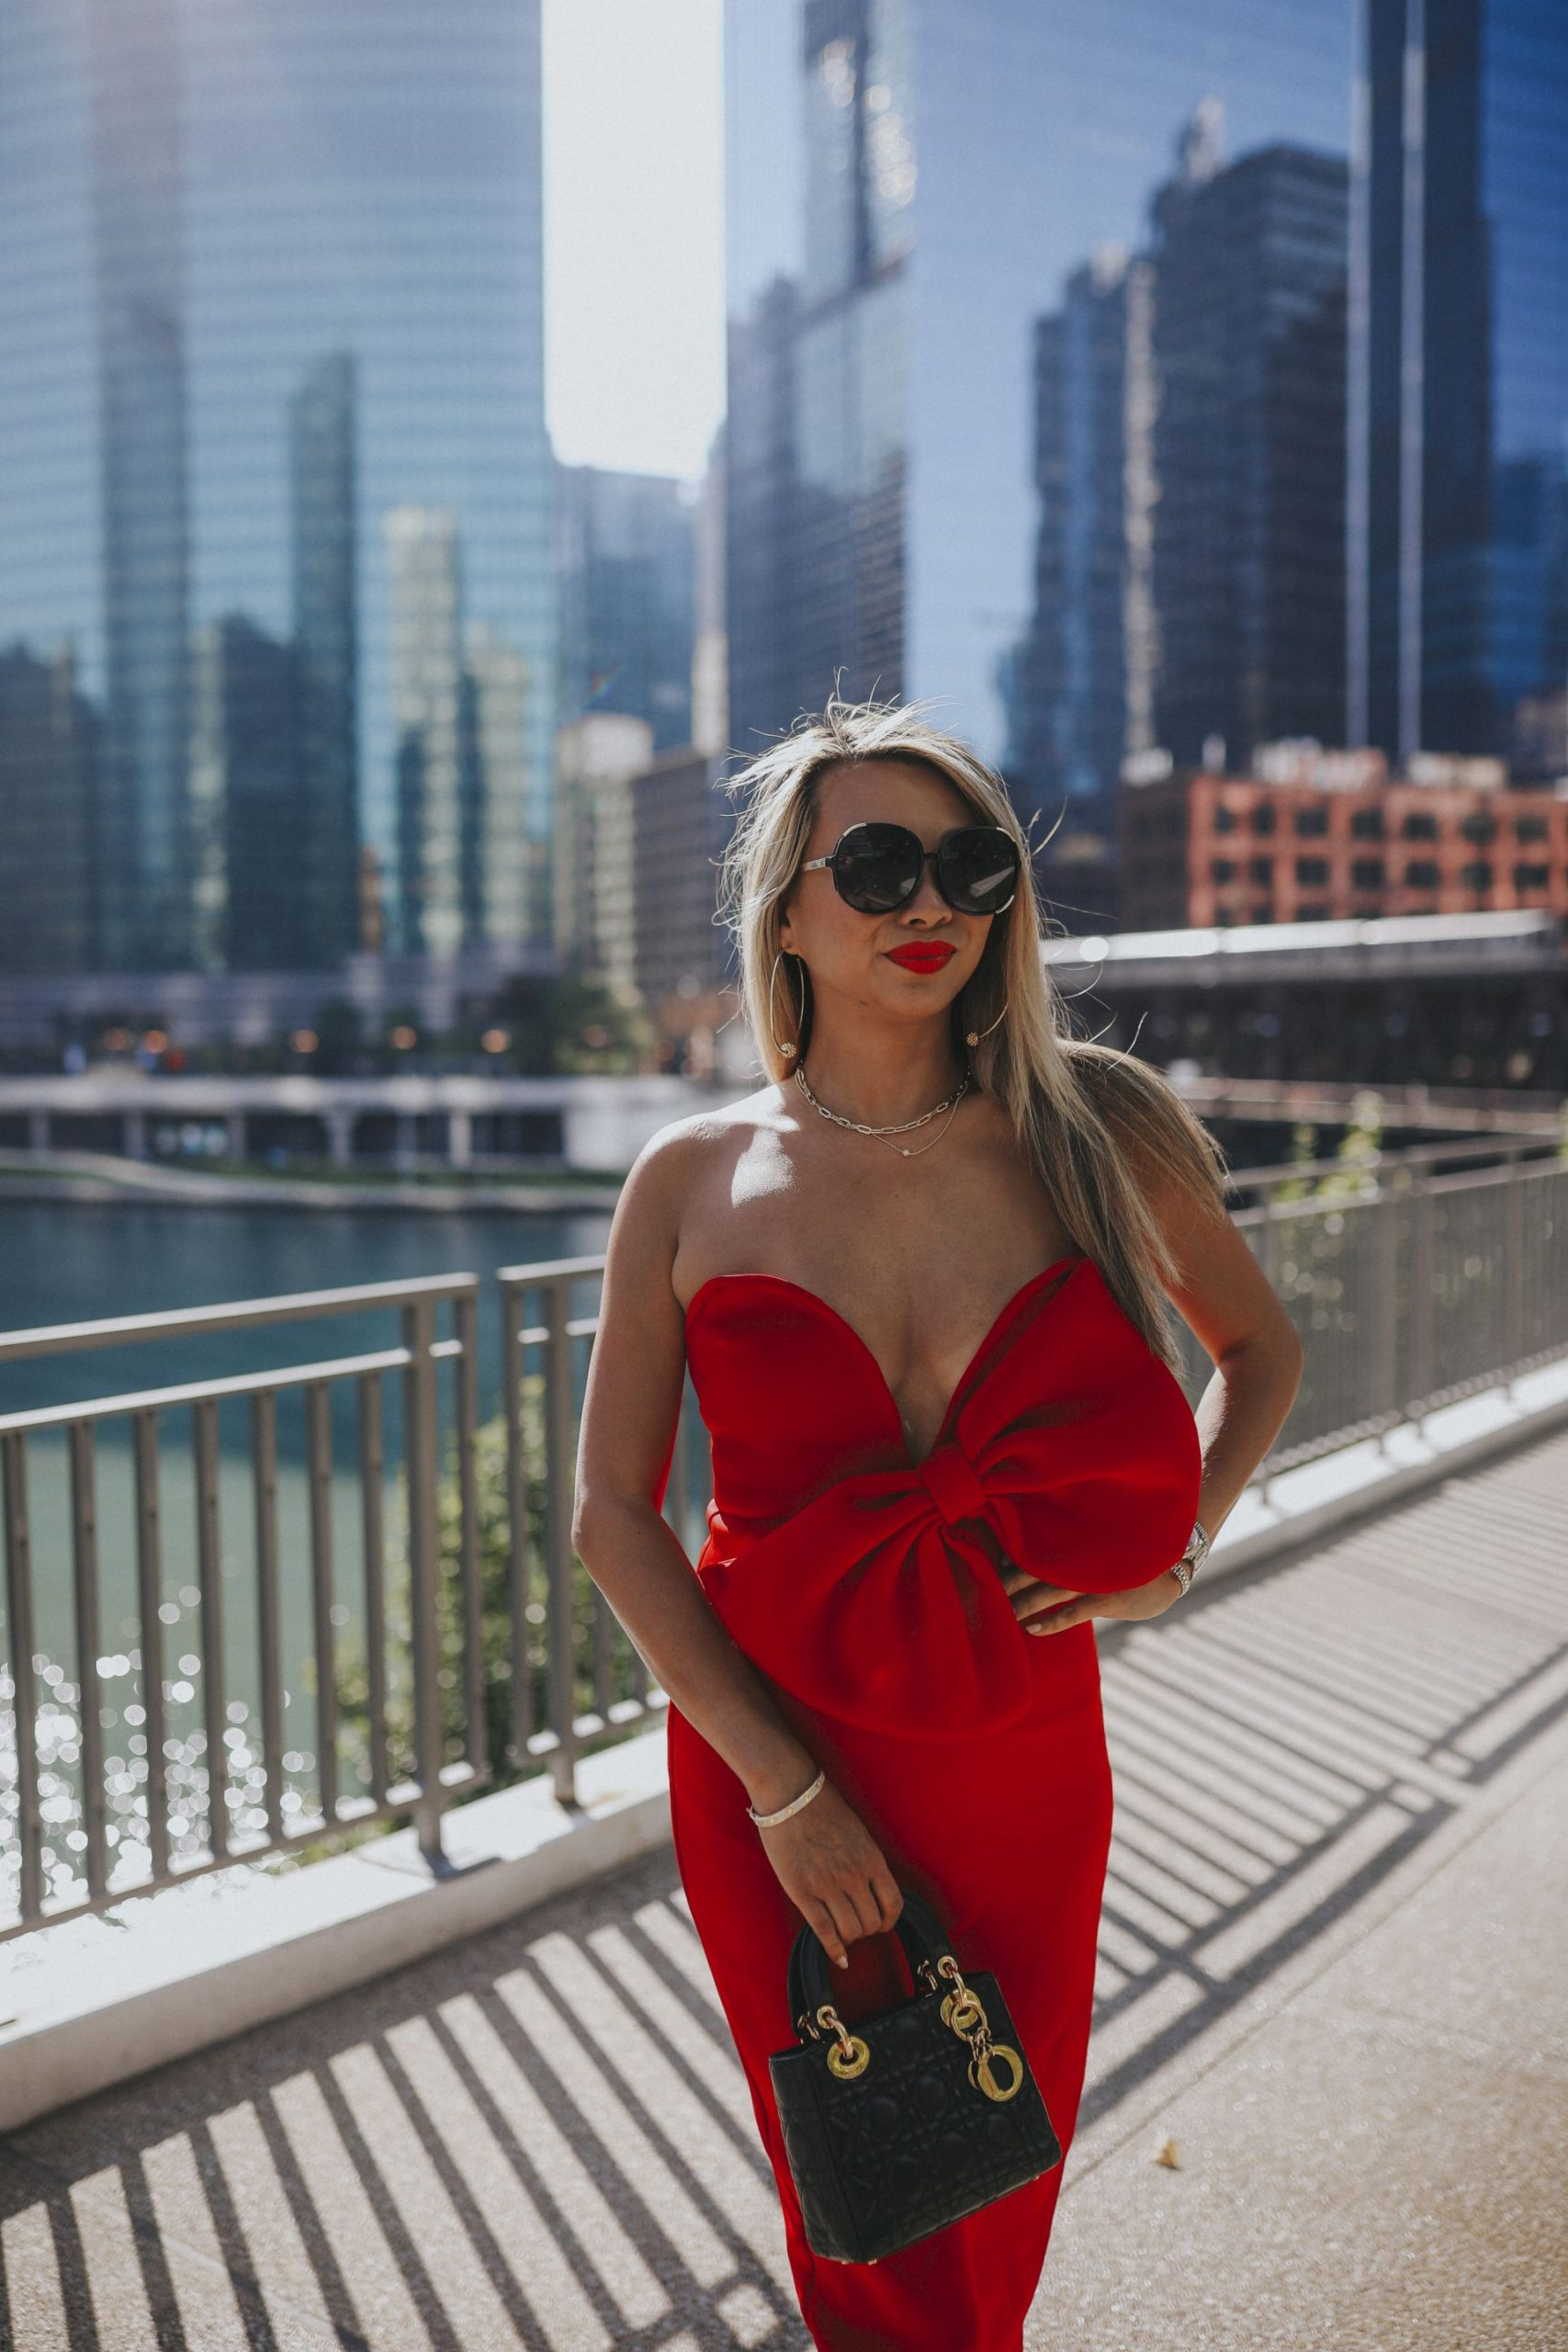 Gibsons Italia, Best Location for photos in Chicago, Jennifer Worman, Red Dress Missguided, Best Chicago Blogger, Chicago Instagram Spots